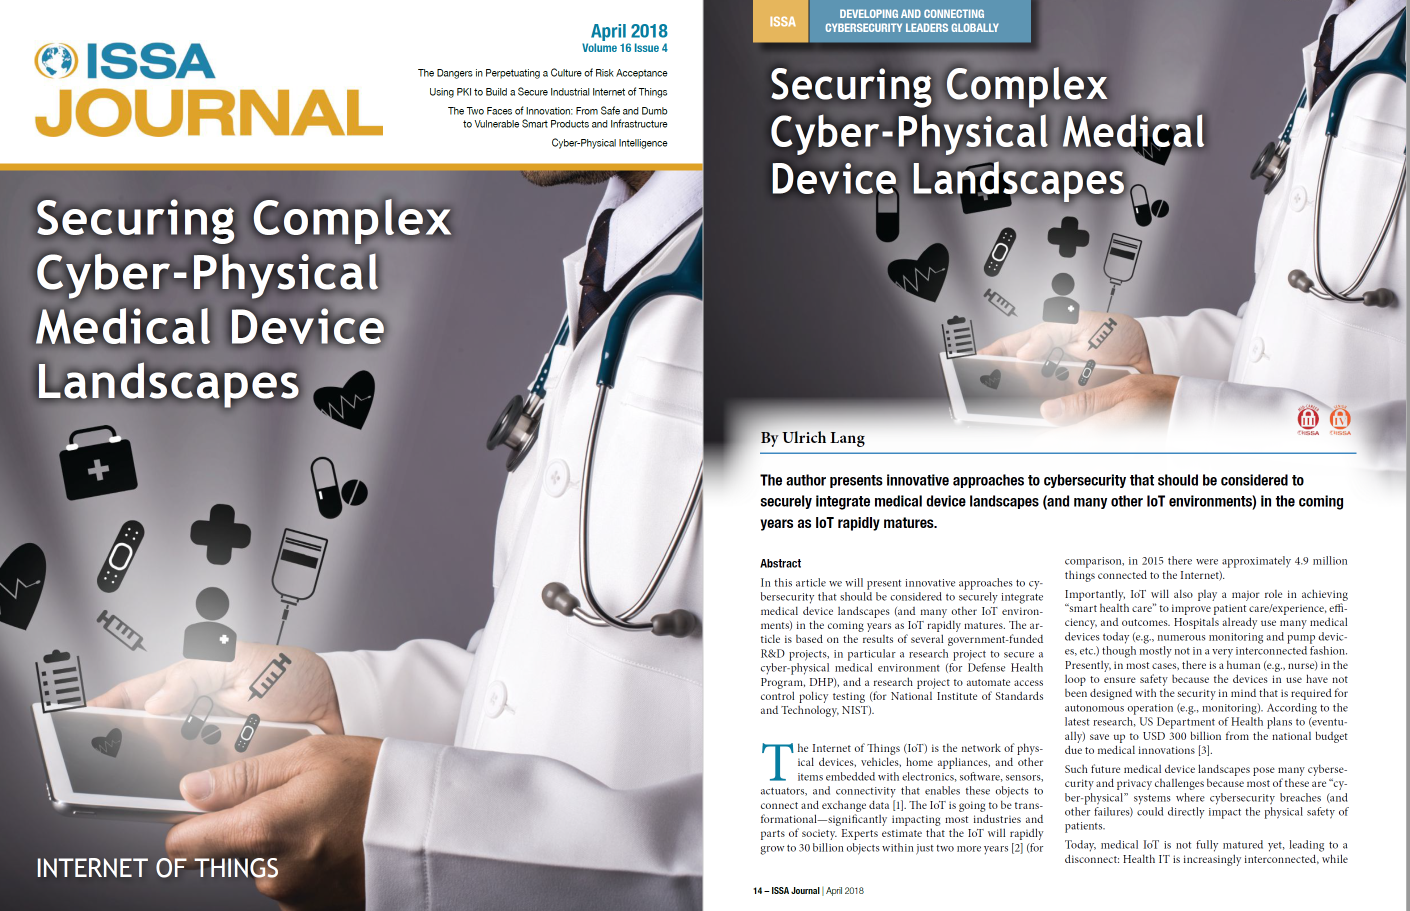 Securing complex cyber-physical medical device landscapes